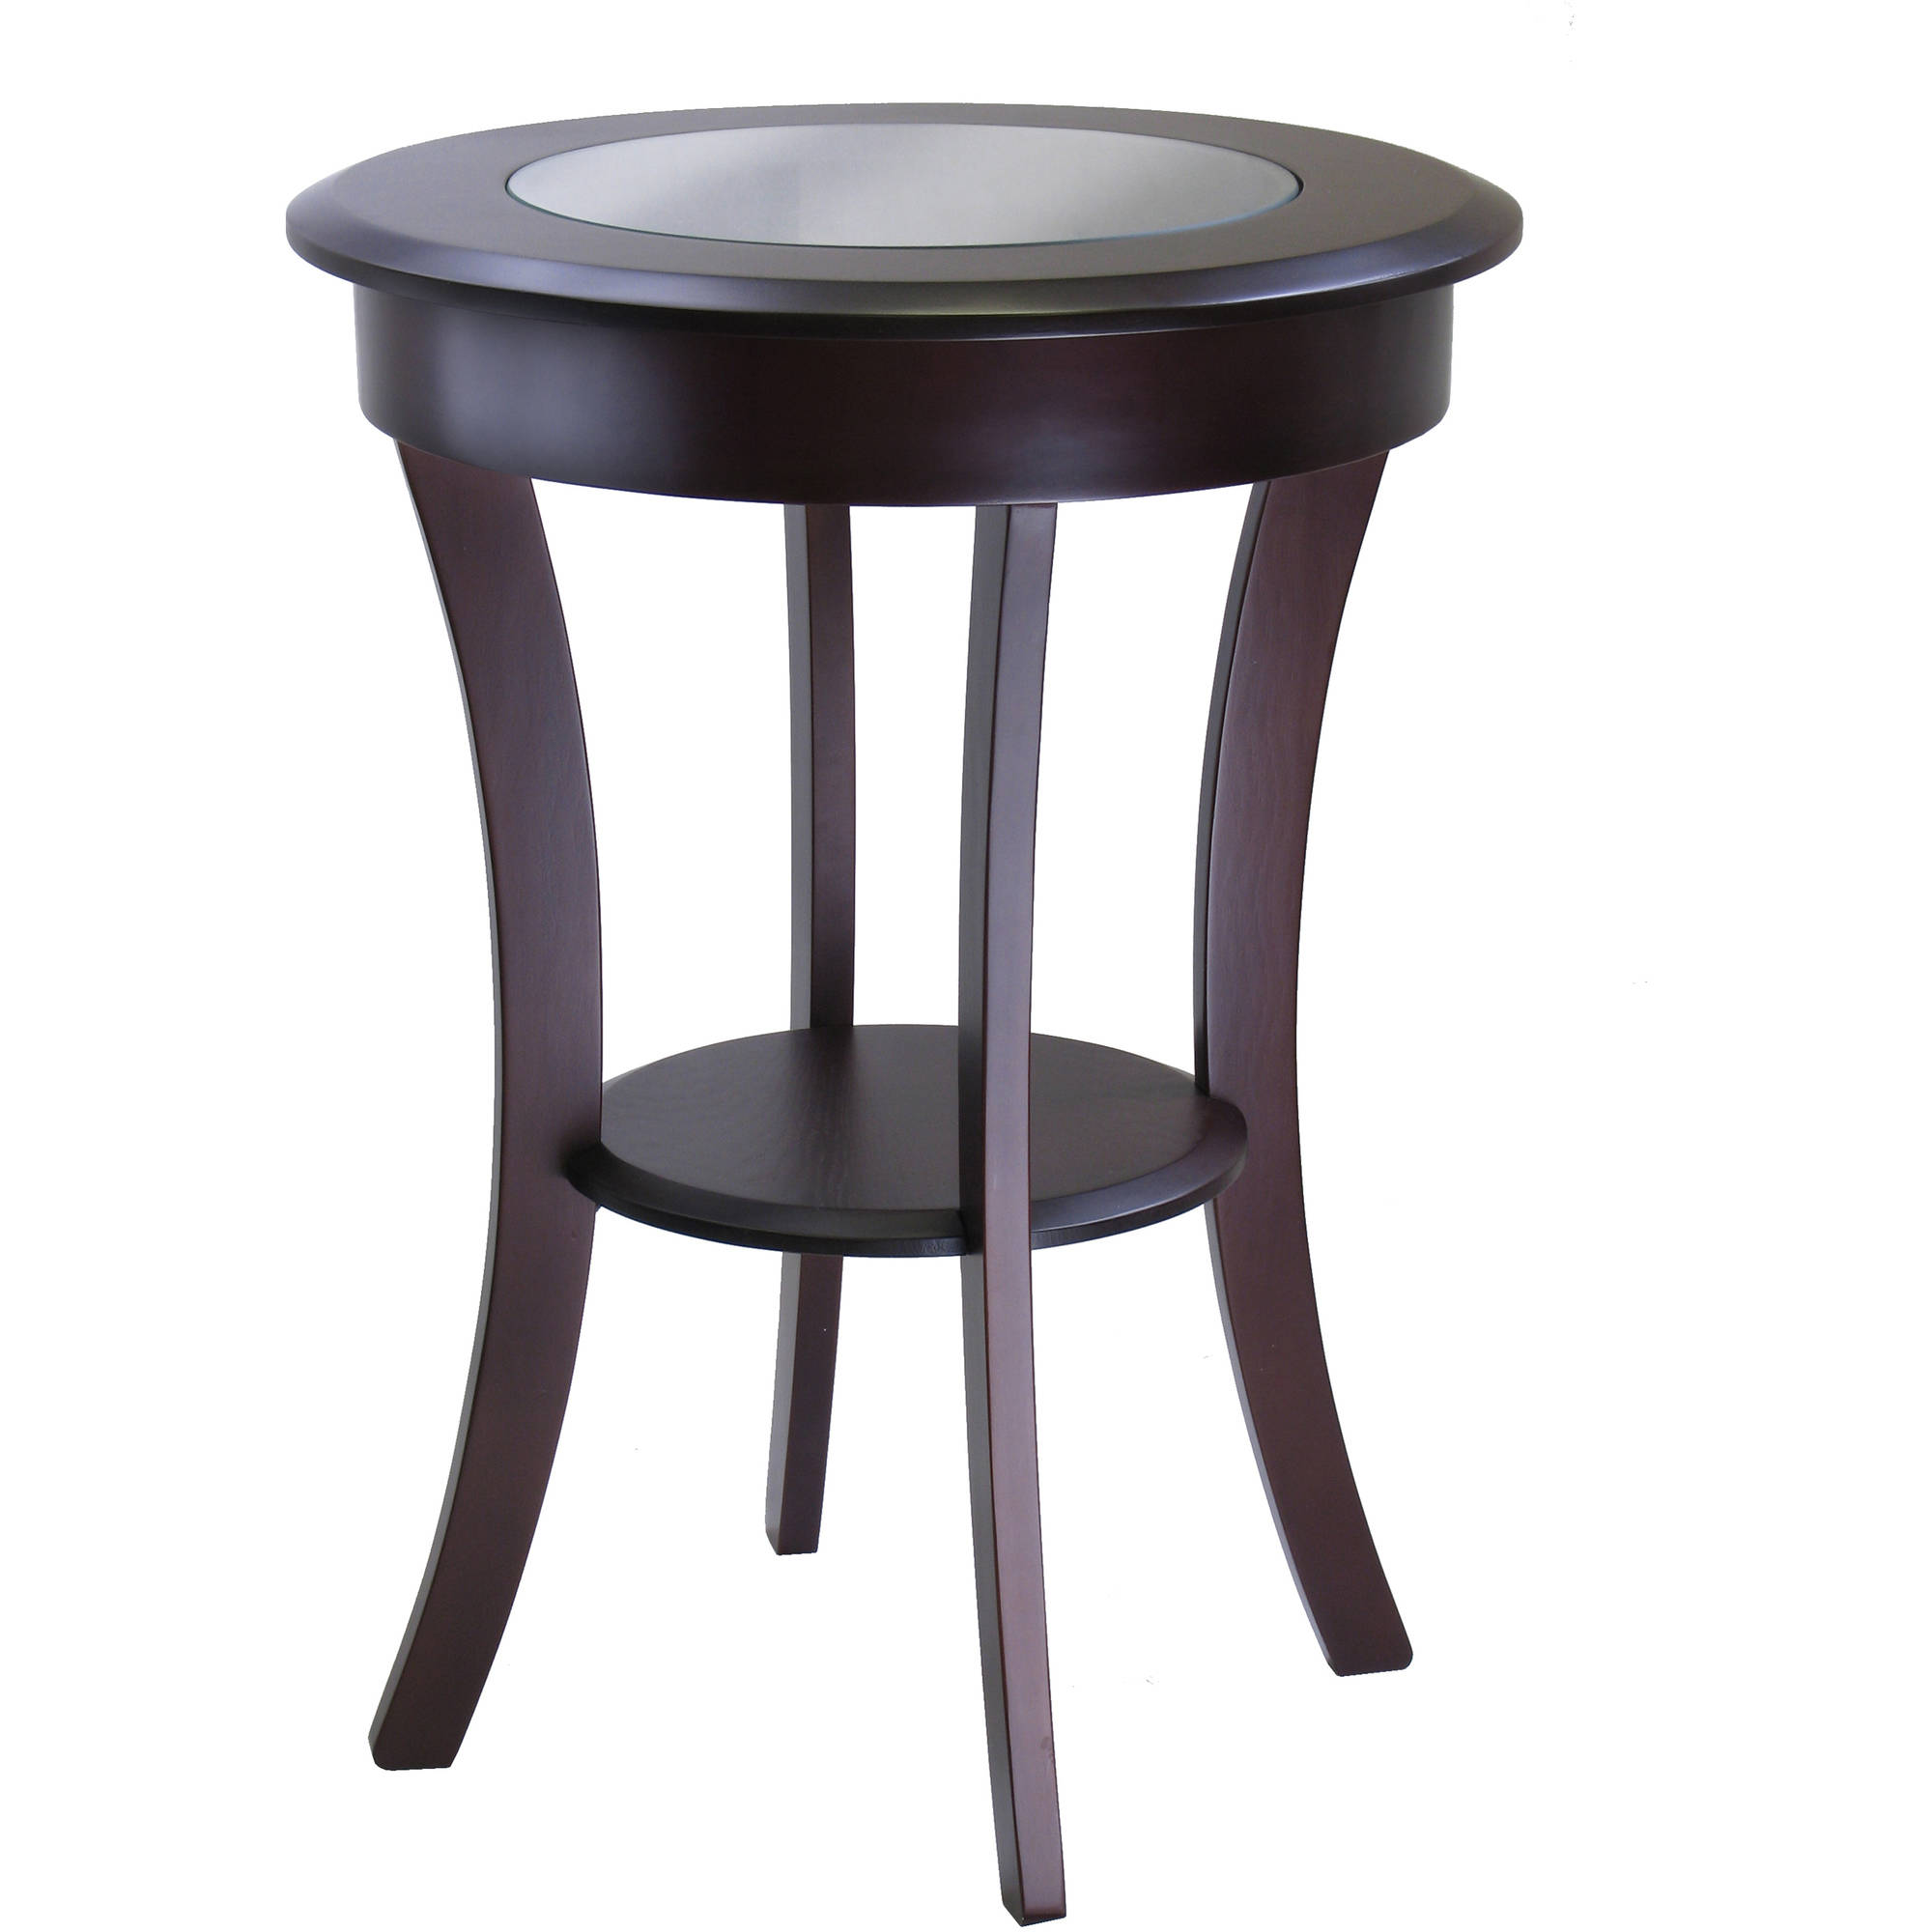 and wood gold tables side small outdoor rustic accent nest round metal for bedroom gloss mater wooden glass table kmart bedside full size unfinished end french style pub height